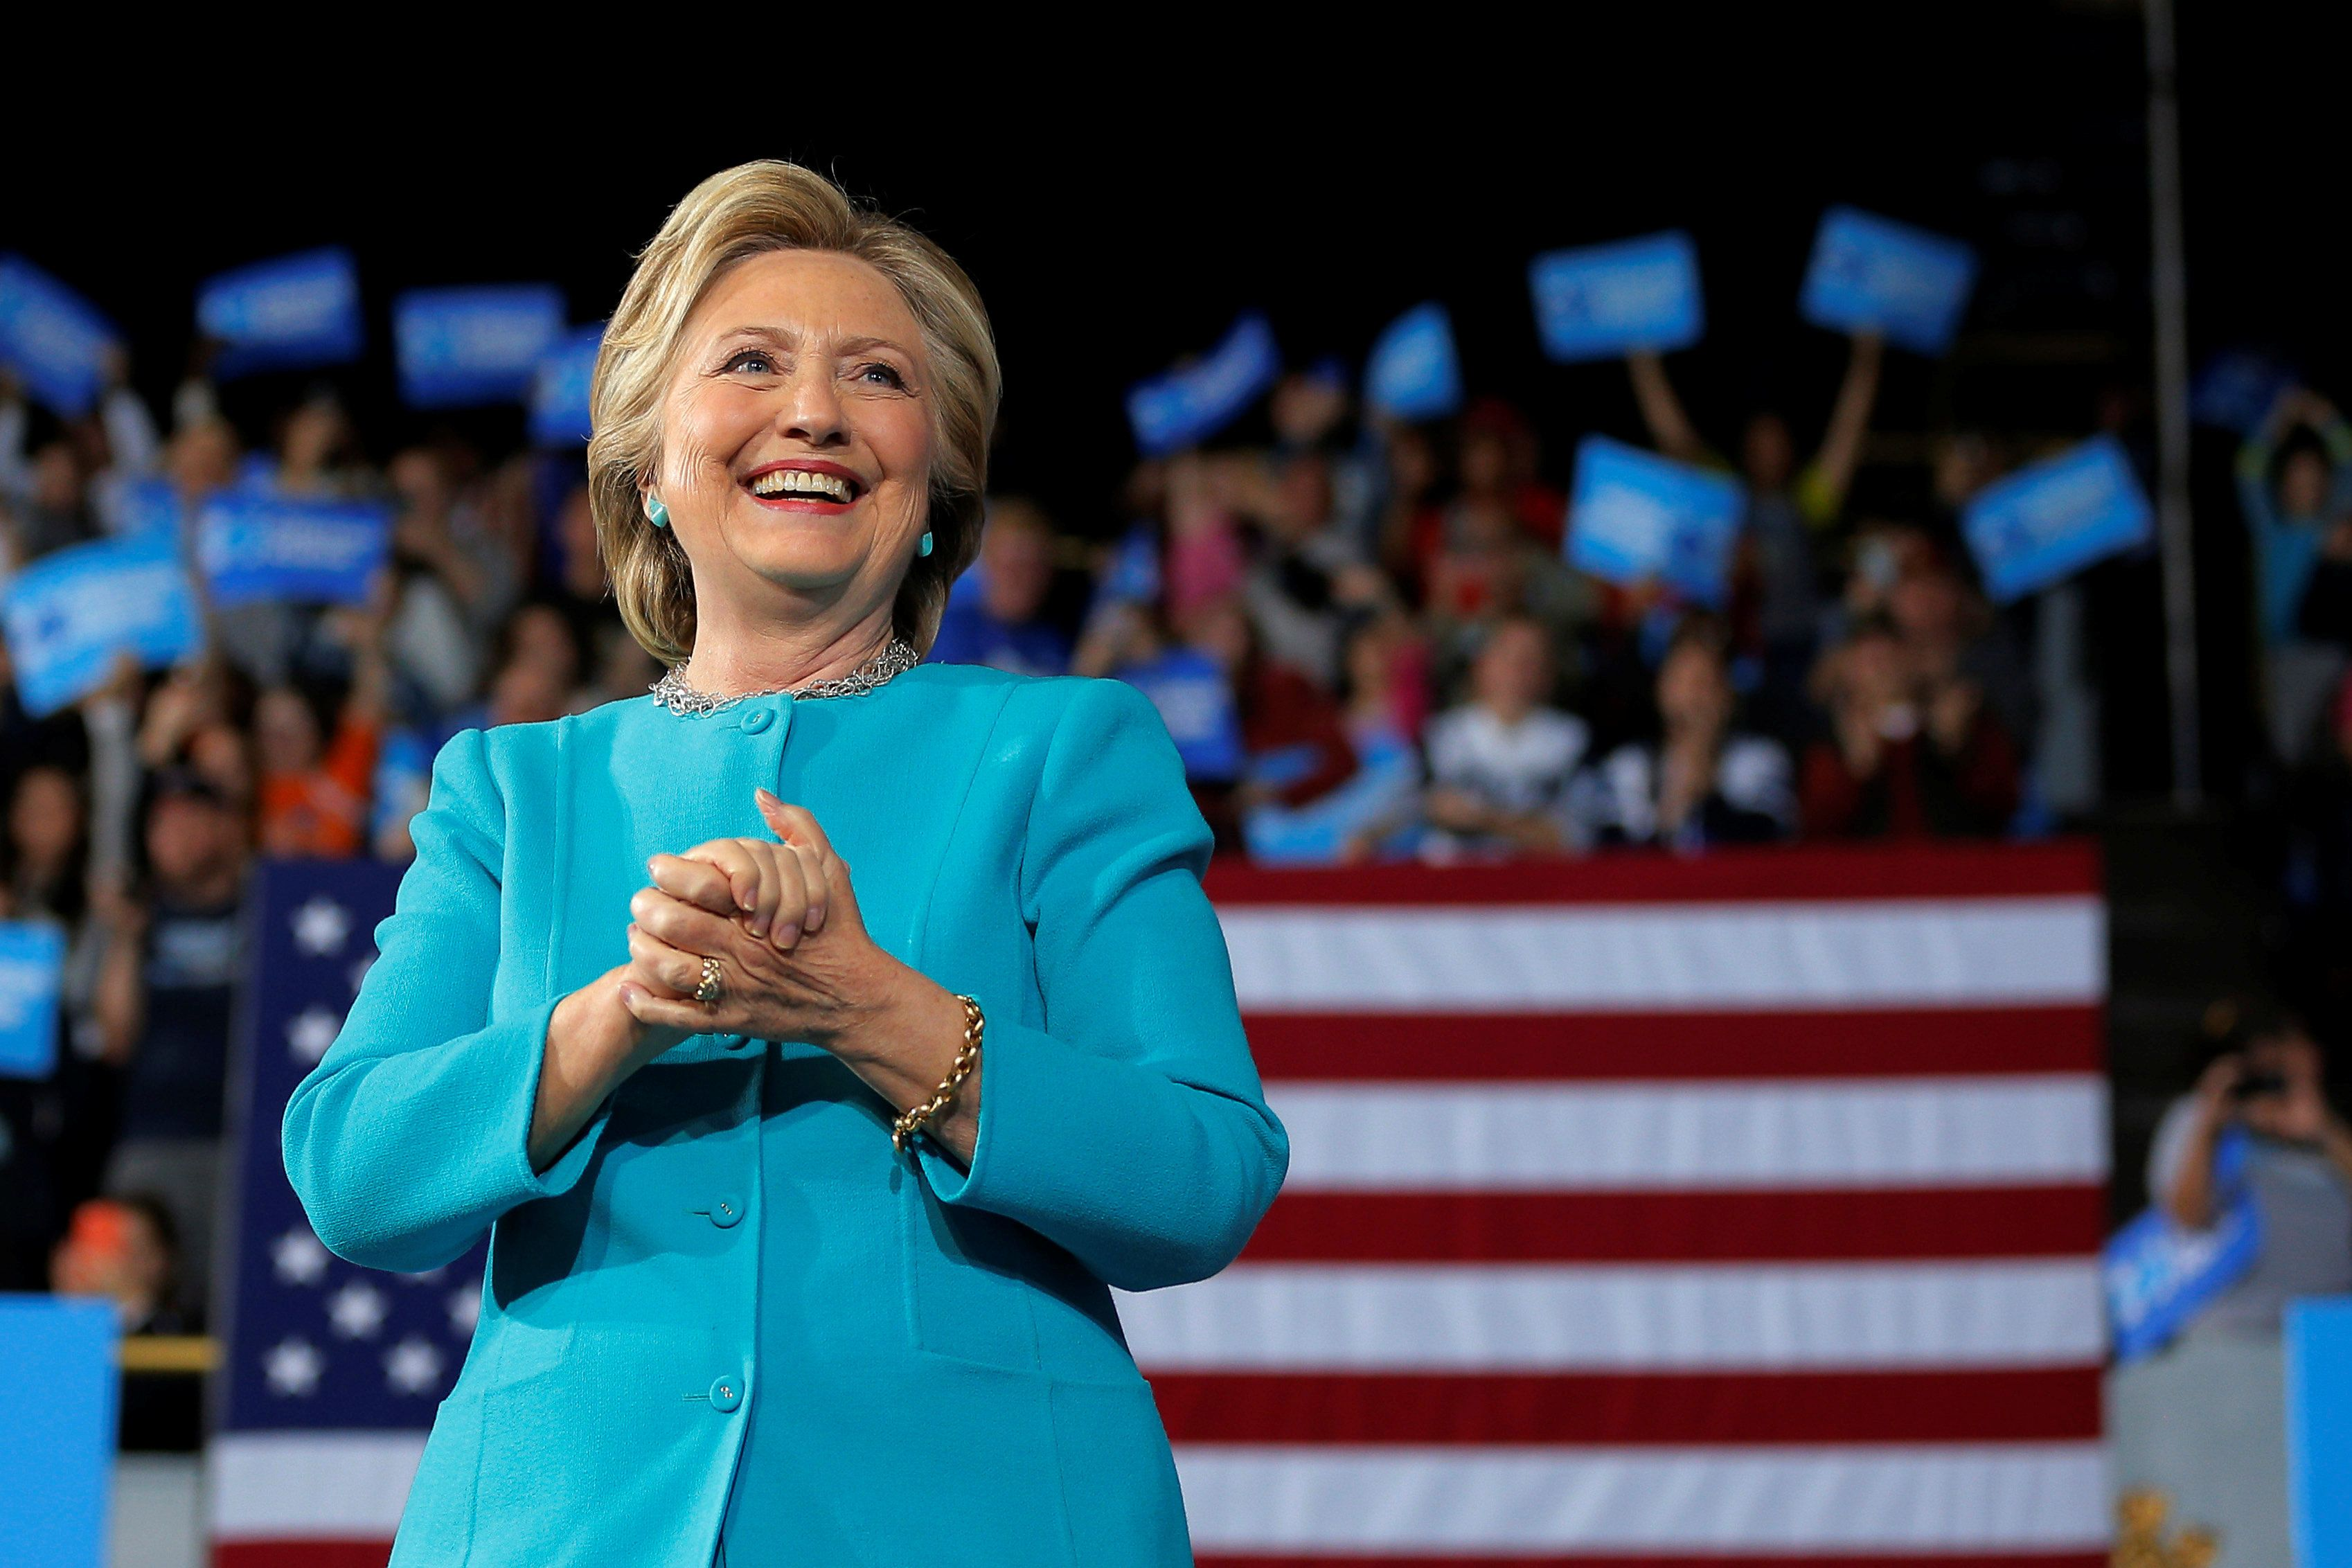 U.S. Democratic presidential nominee Hillary Clinton takes the stage at a campaign rally in Cleveland, Ohio, U.S. November 6, 2016.  REUTERS/Brian Snyder